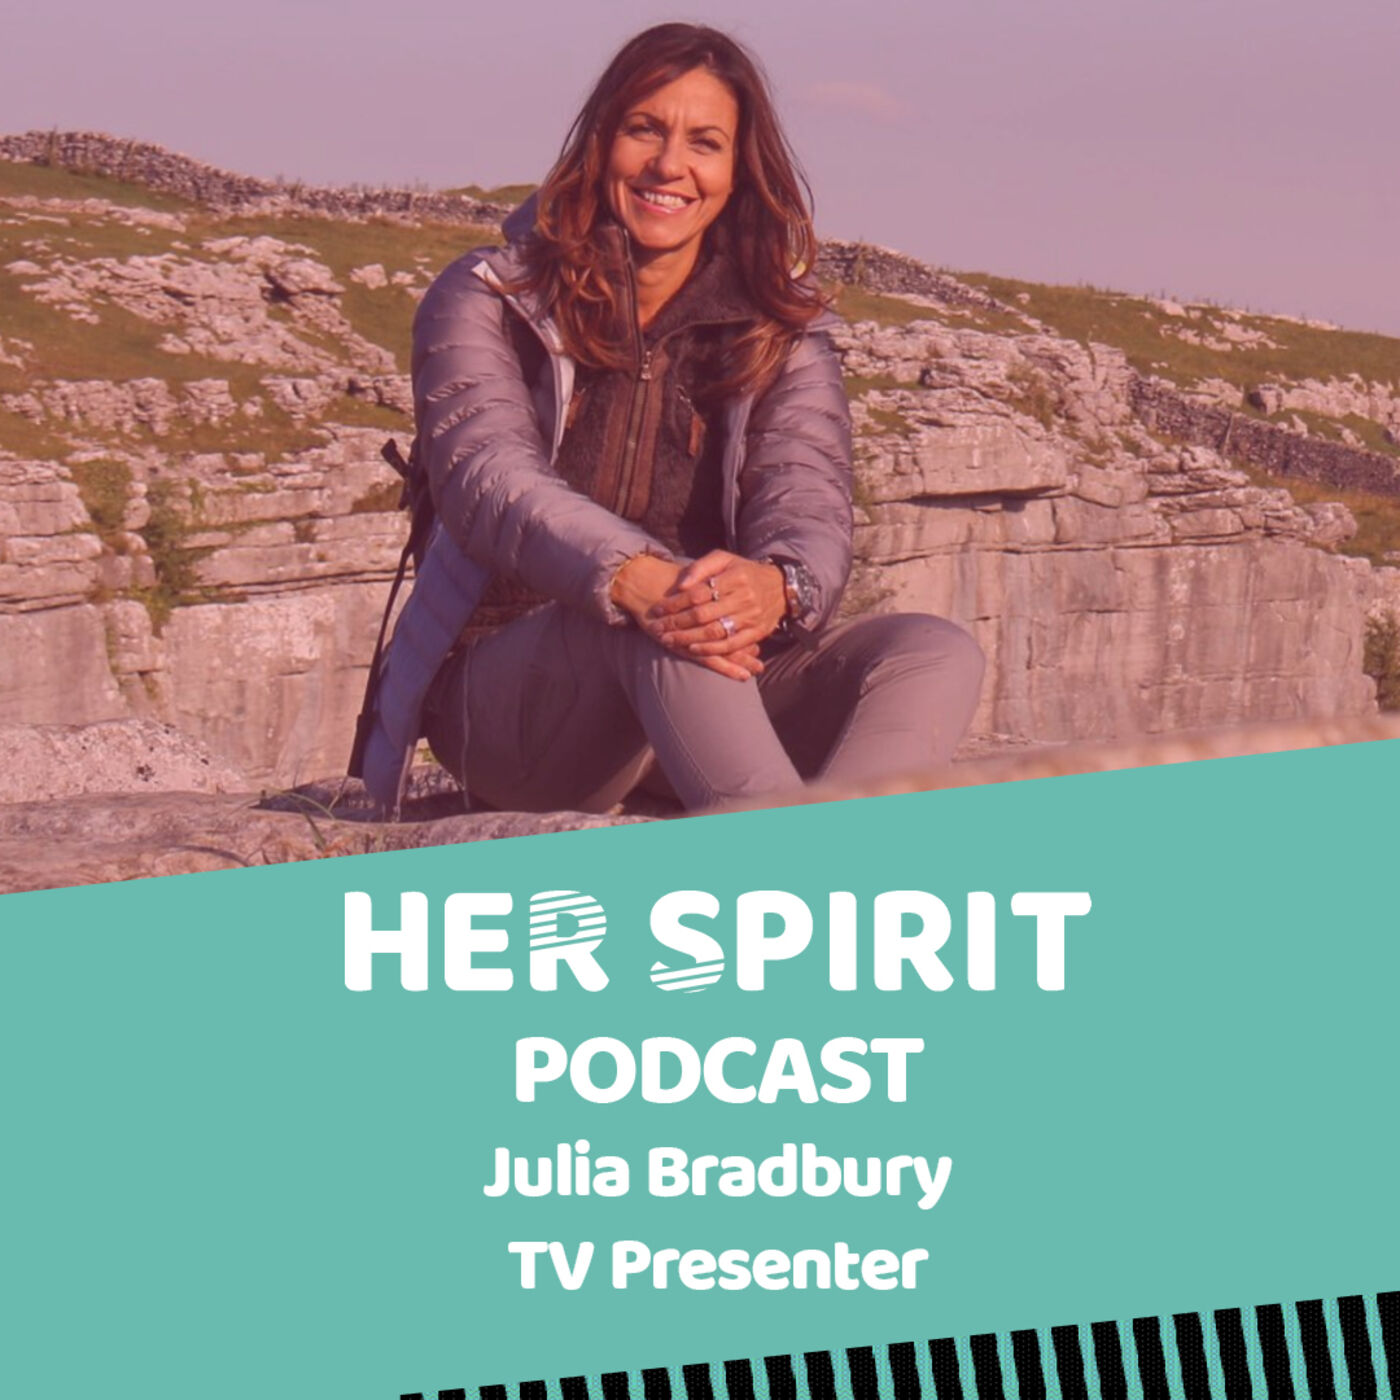 TV presenter Julia Bradbury shares with Louise and Annie talks about her love of the outdoors and walking, and her passion for sustainable tourism, the need to reduce plastic and raising the awareness of plastic pollution.